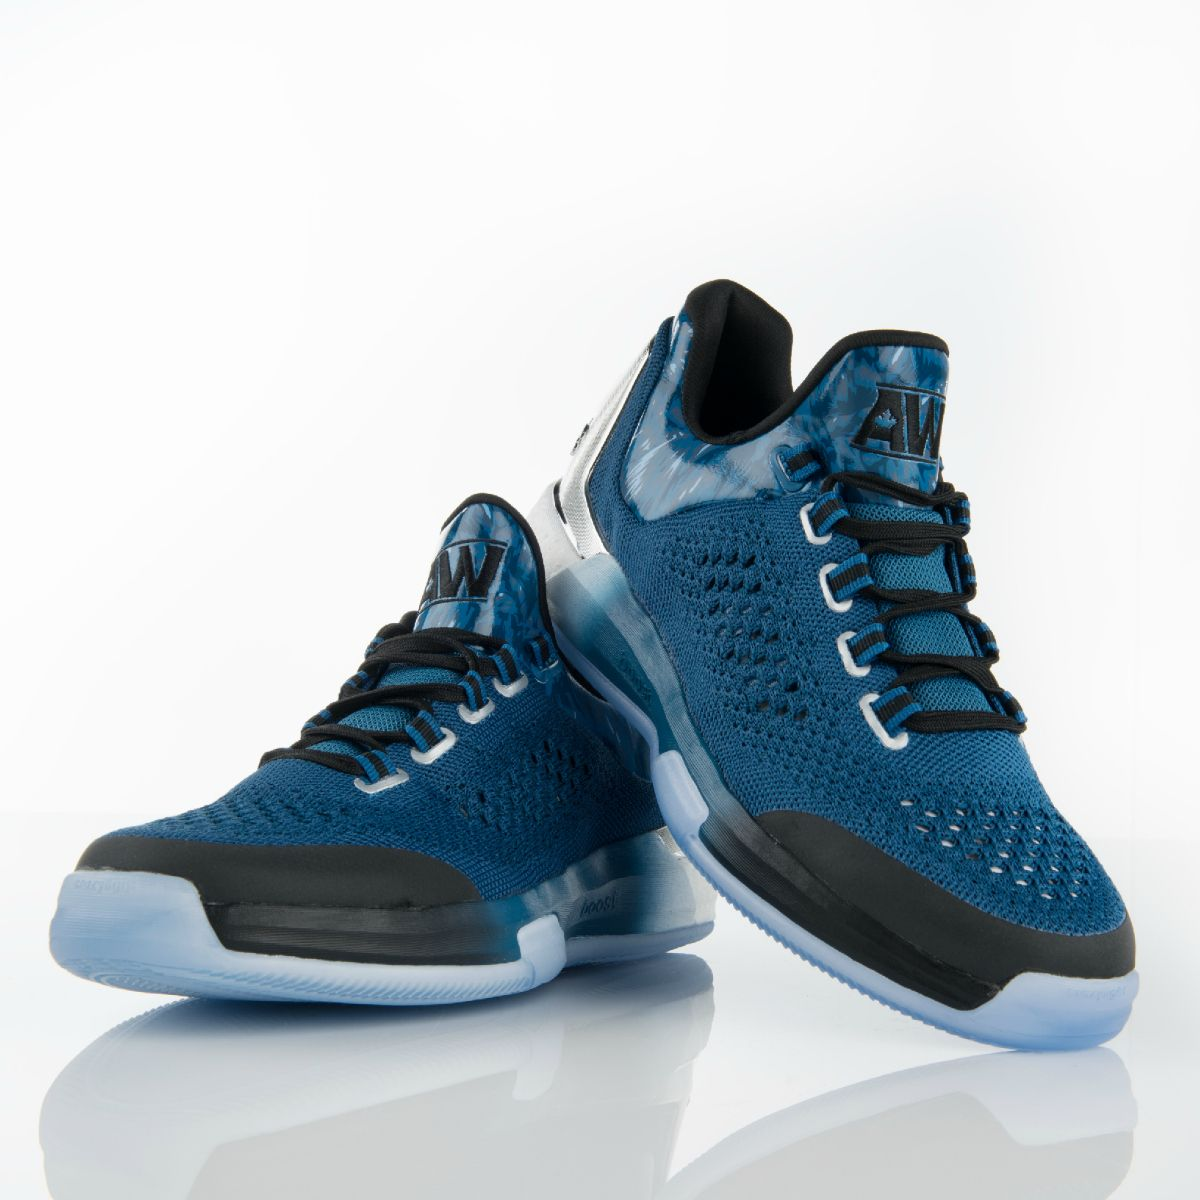 Adidas crazylight boost low 2016 bred black red mens basketball shoes - When You Re Andrew Wiggins You Need A Responsive Shoe That S As Adaptive As